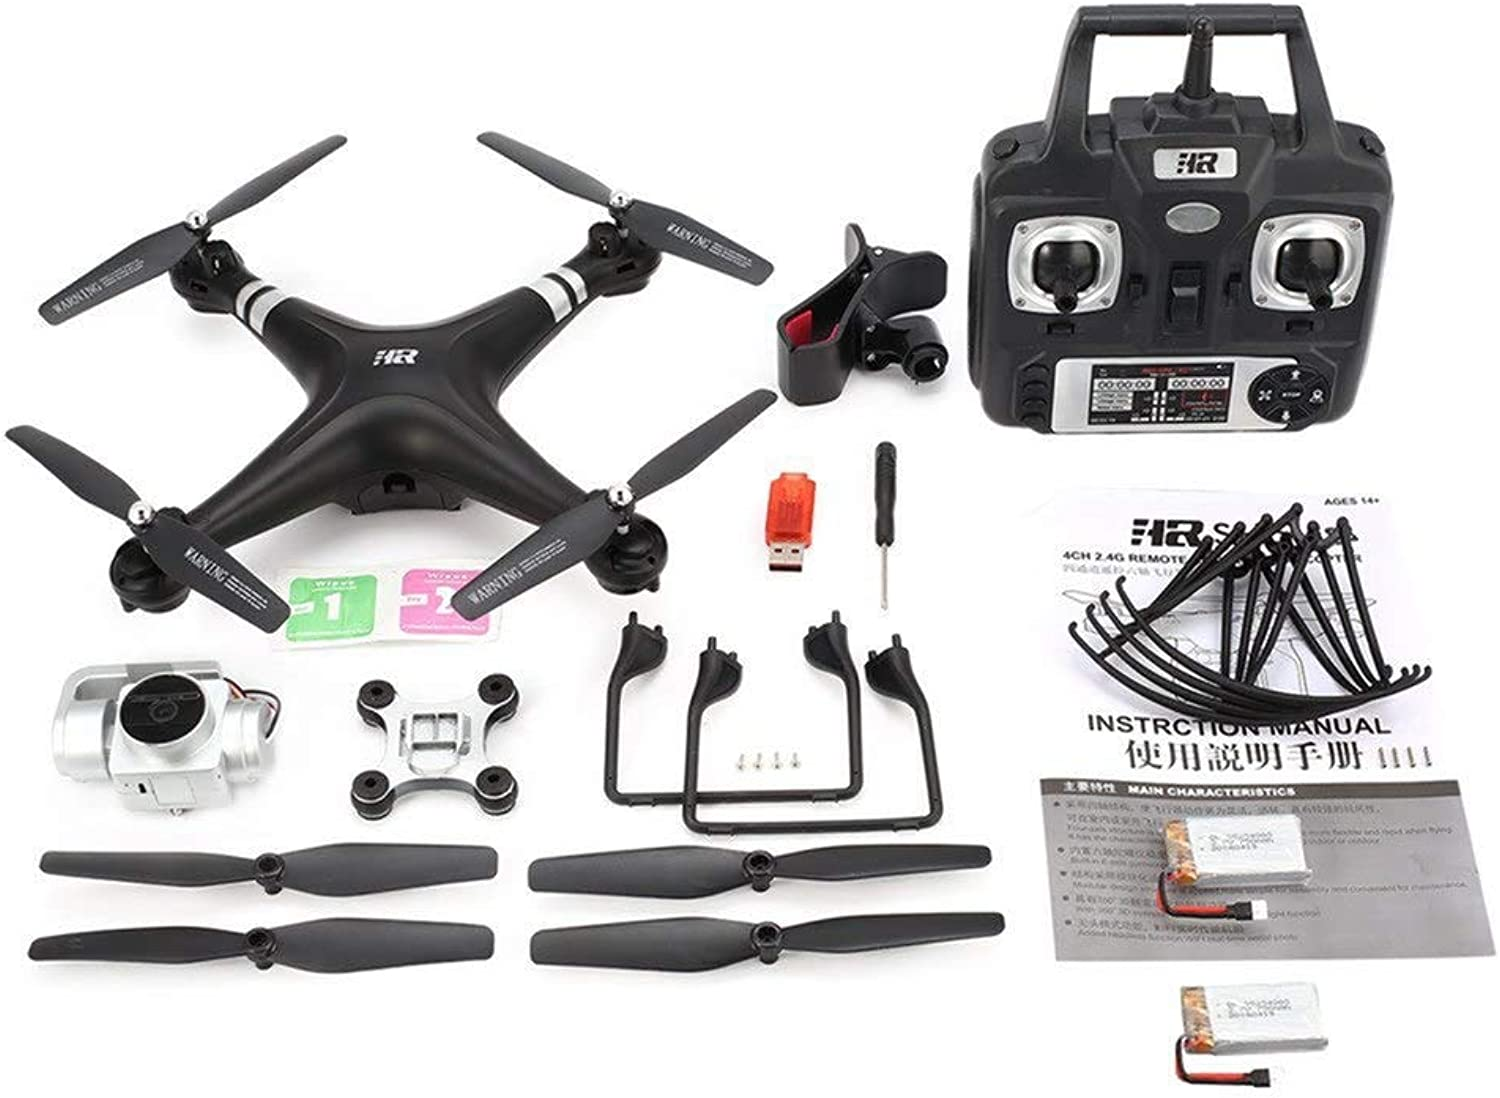 Generic SH5HD FPV RC Drone Quadcopter with 1080P Adjustable Wide Angle WiFi HD Camera Live Video Altitude Hold with 2 3 Batteries Model 720p Black 2 B